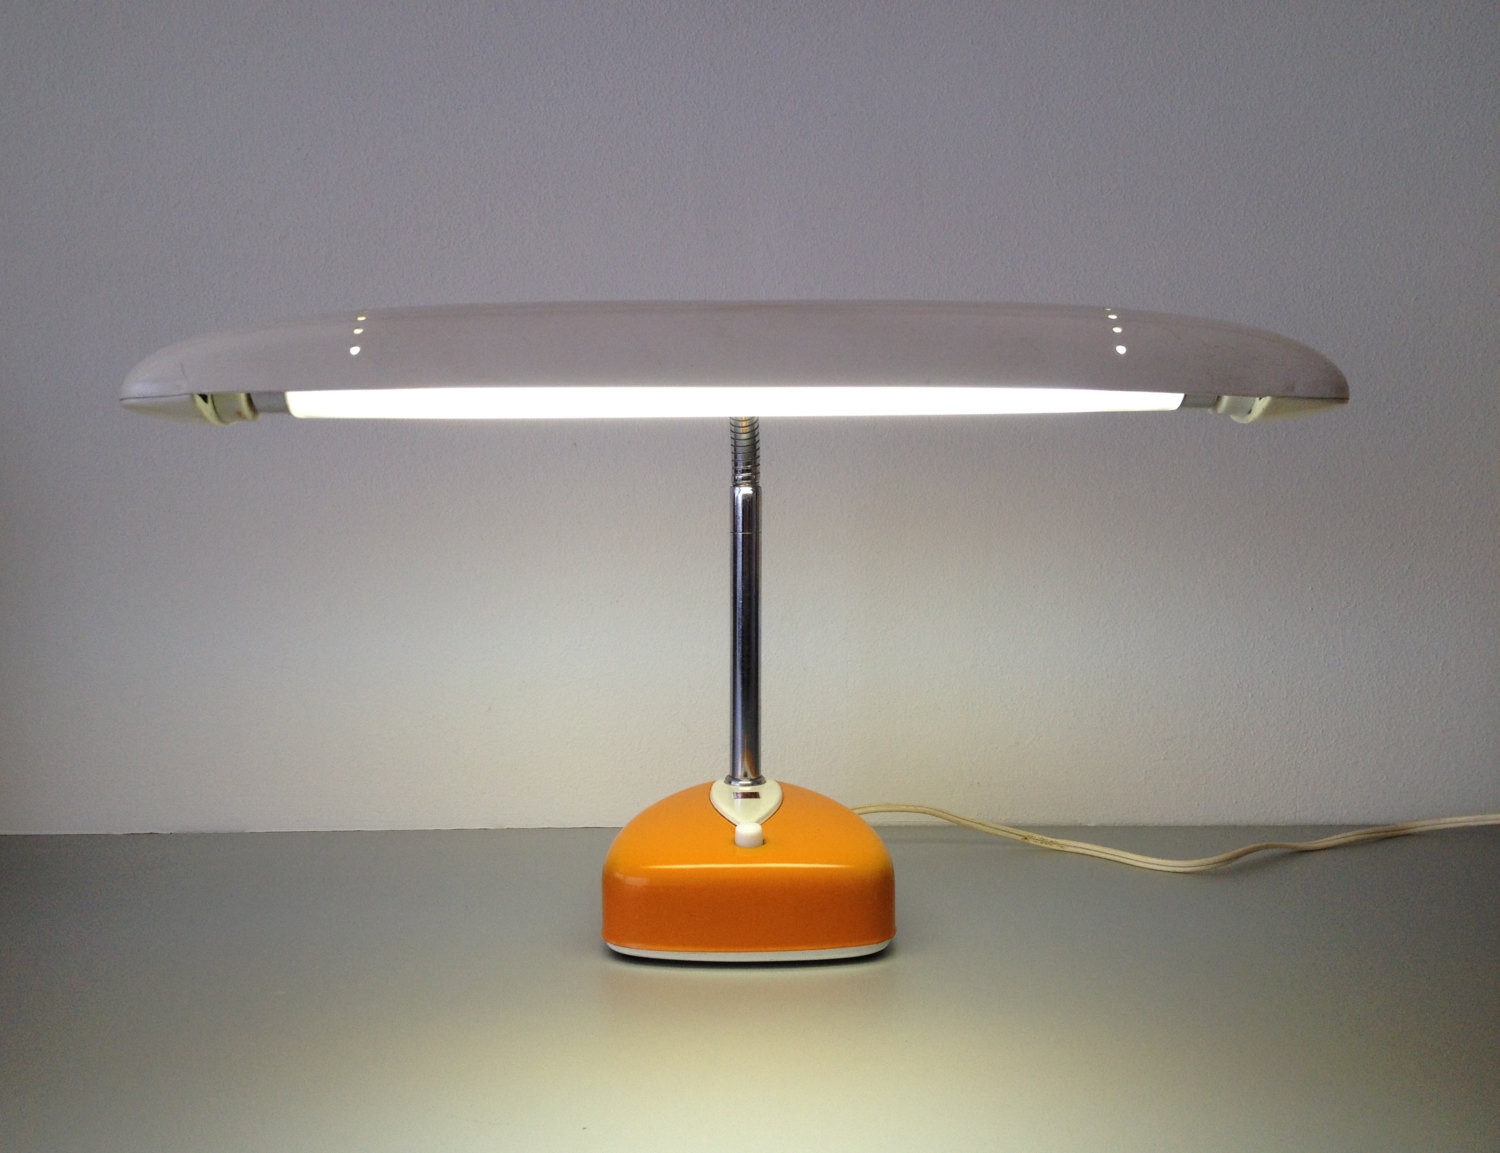 Best ideas about Florescent Desk Lamps . Save or Pin vintage desk lamp National Fluorescent Lamp stand Model Now.